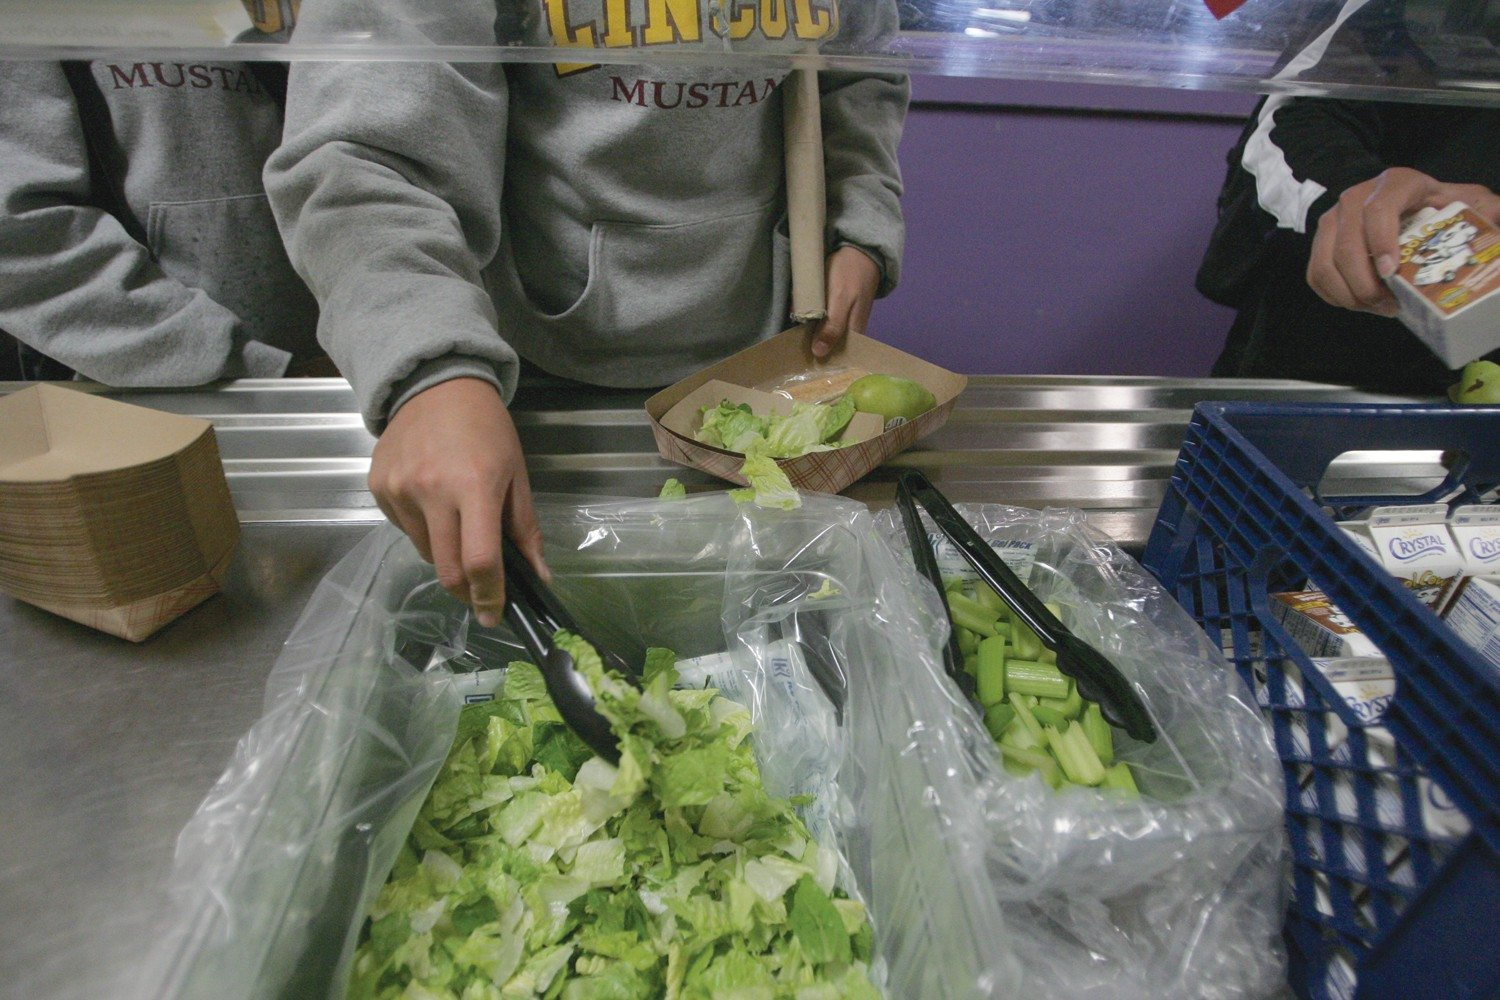 Mike Koozmin/The S.F. ExaminerWith the move to serving fresher food — not frozen — as of January 2013